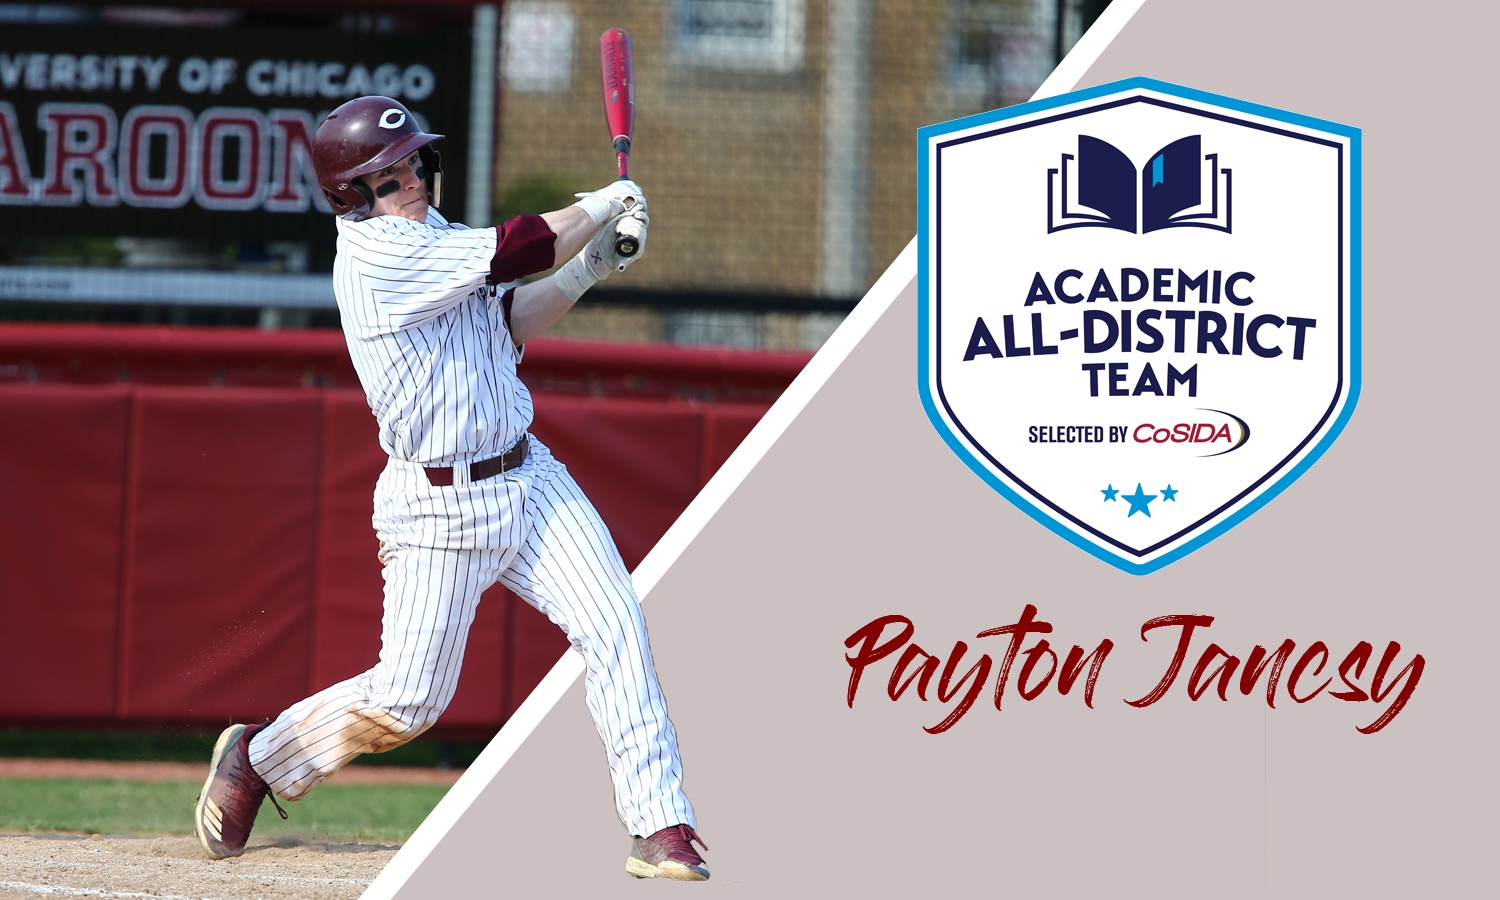 Payton Jancsy Picked to CoSIDA Academic All-District Baseball Team